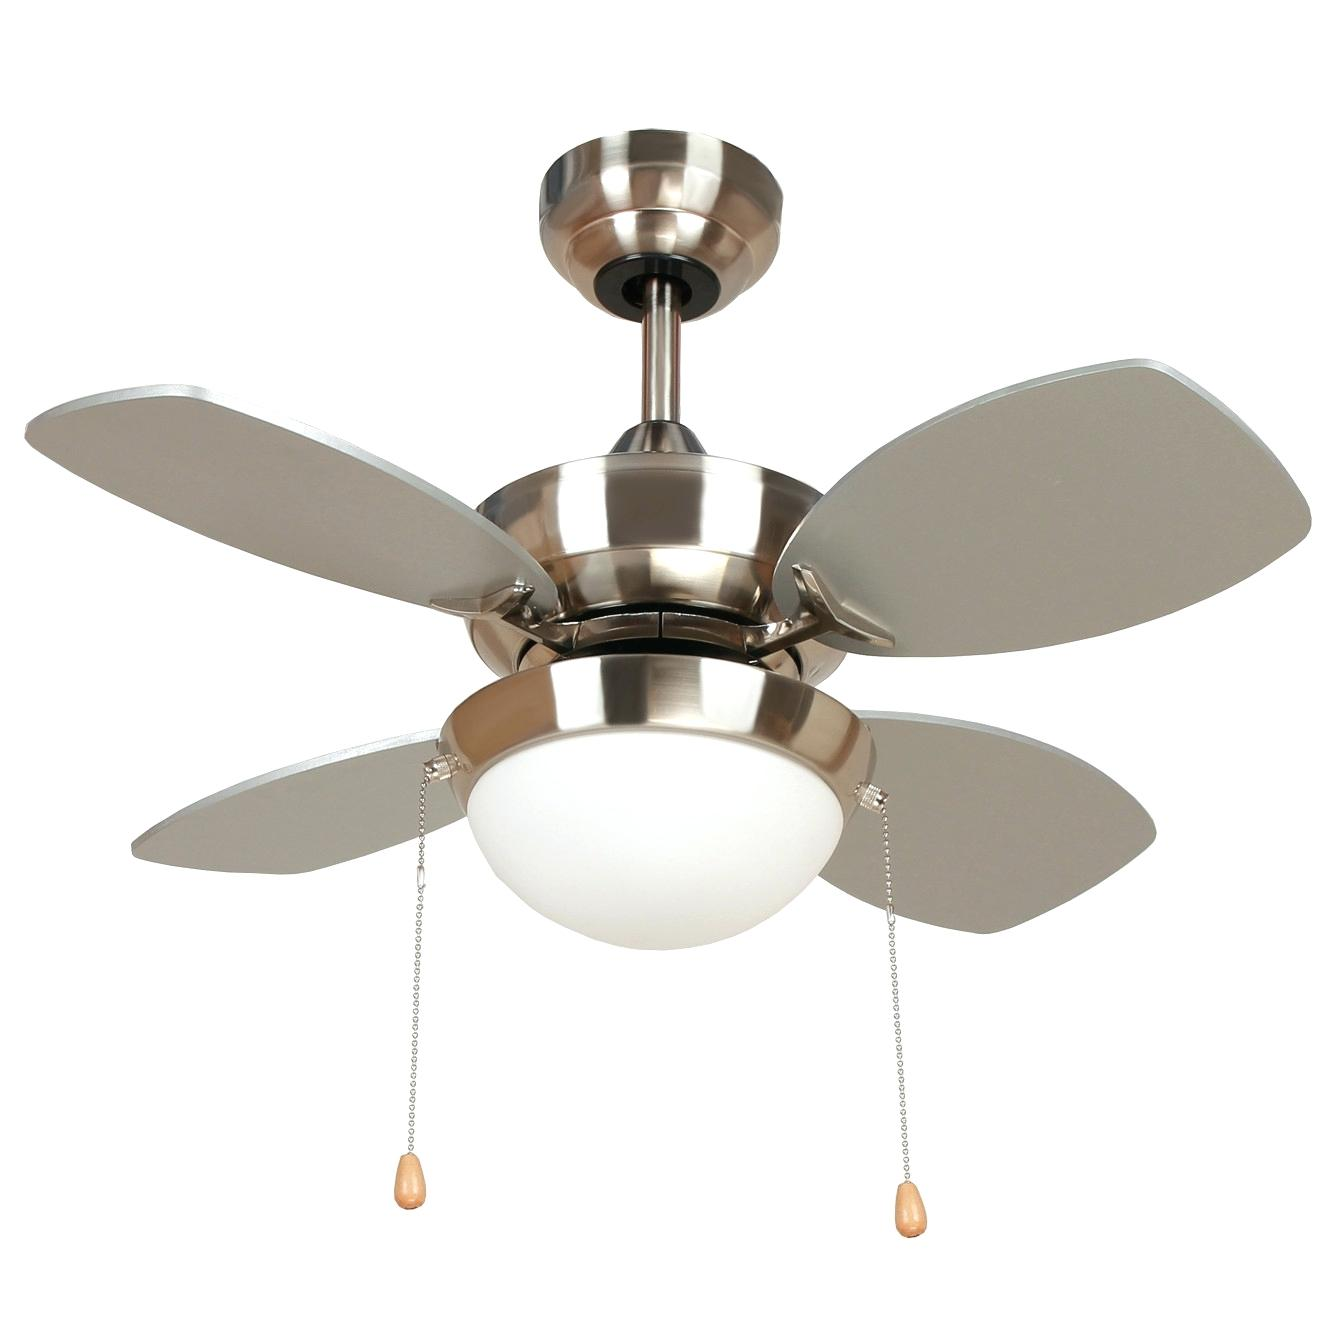 Really Cool Ceiling Fans Asian Ceiling Fans - 10 Ways To Make Your Home Looking